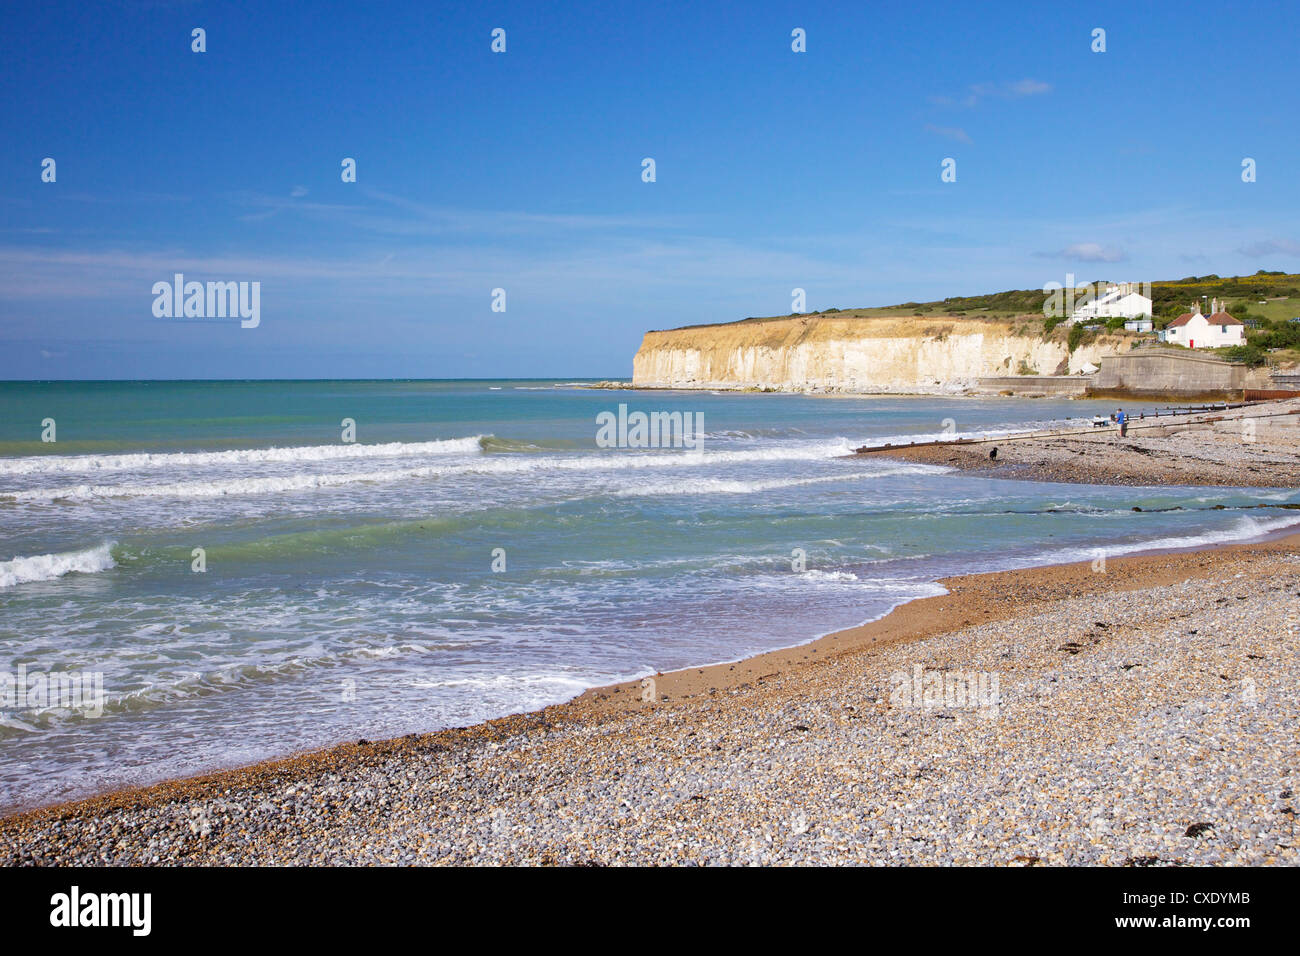 Beach at Cuckmere Haven, East Sussex, South Downs National Park, England, United Kingdom, Europe - Stock Image